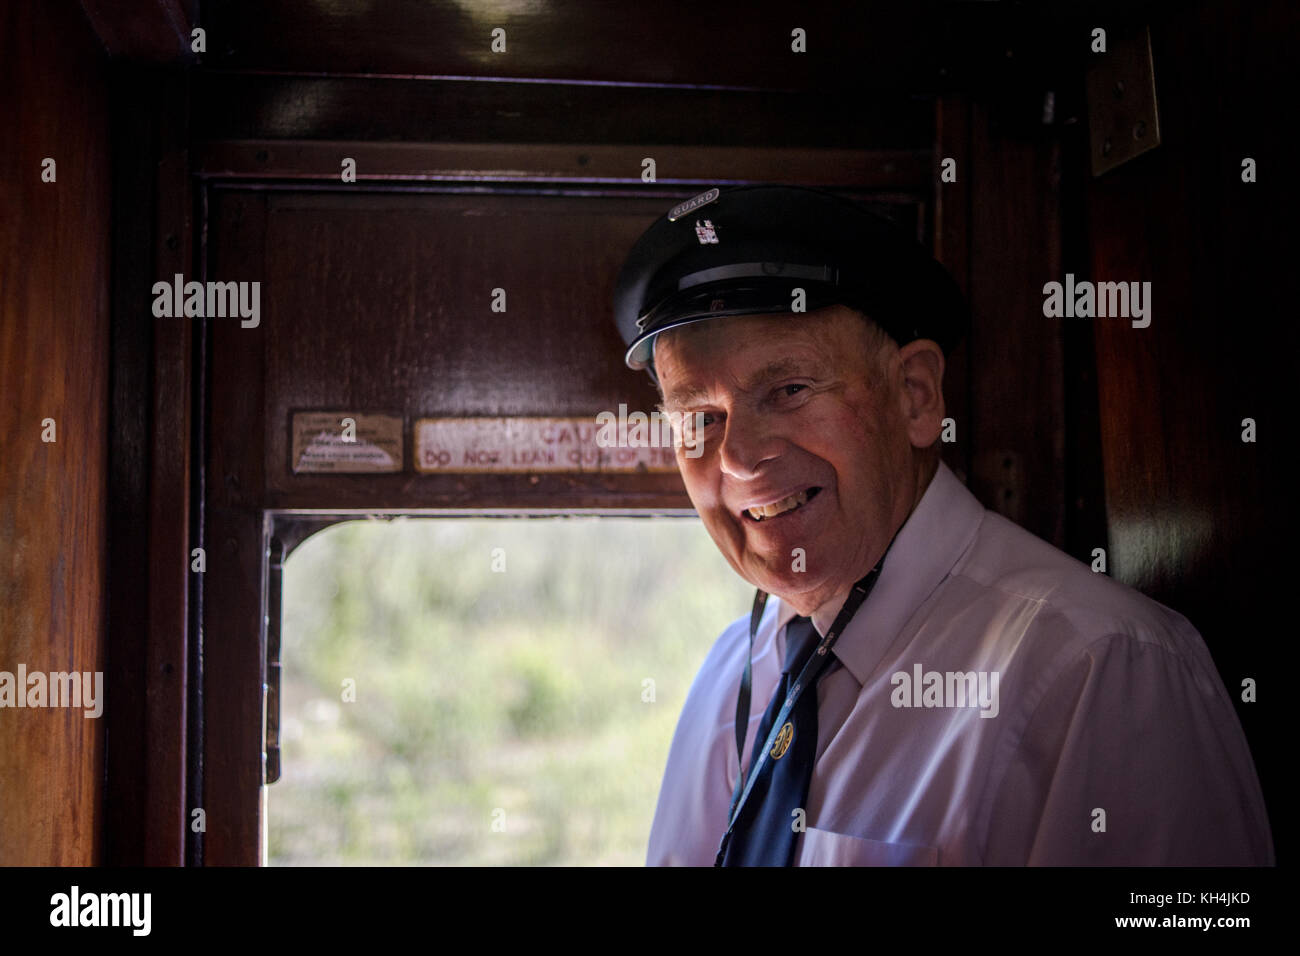 Guard on a train on the South Devon Railway - Stock Image